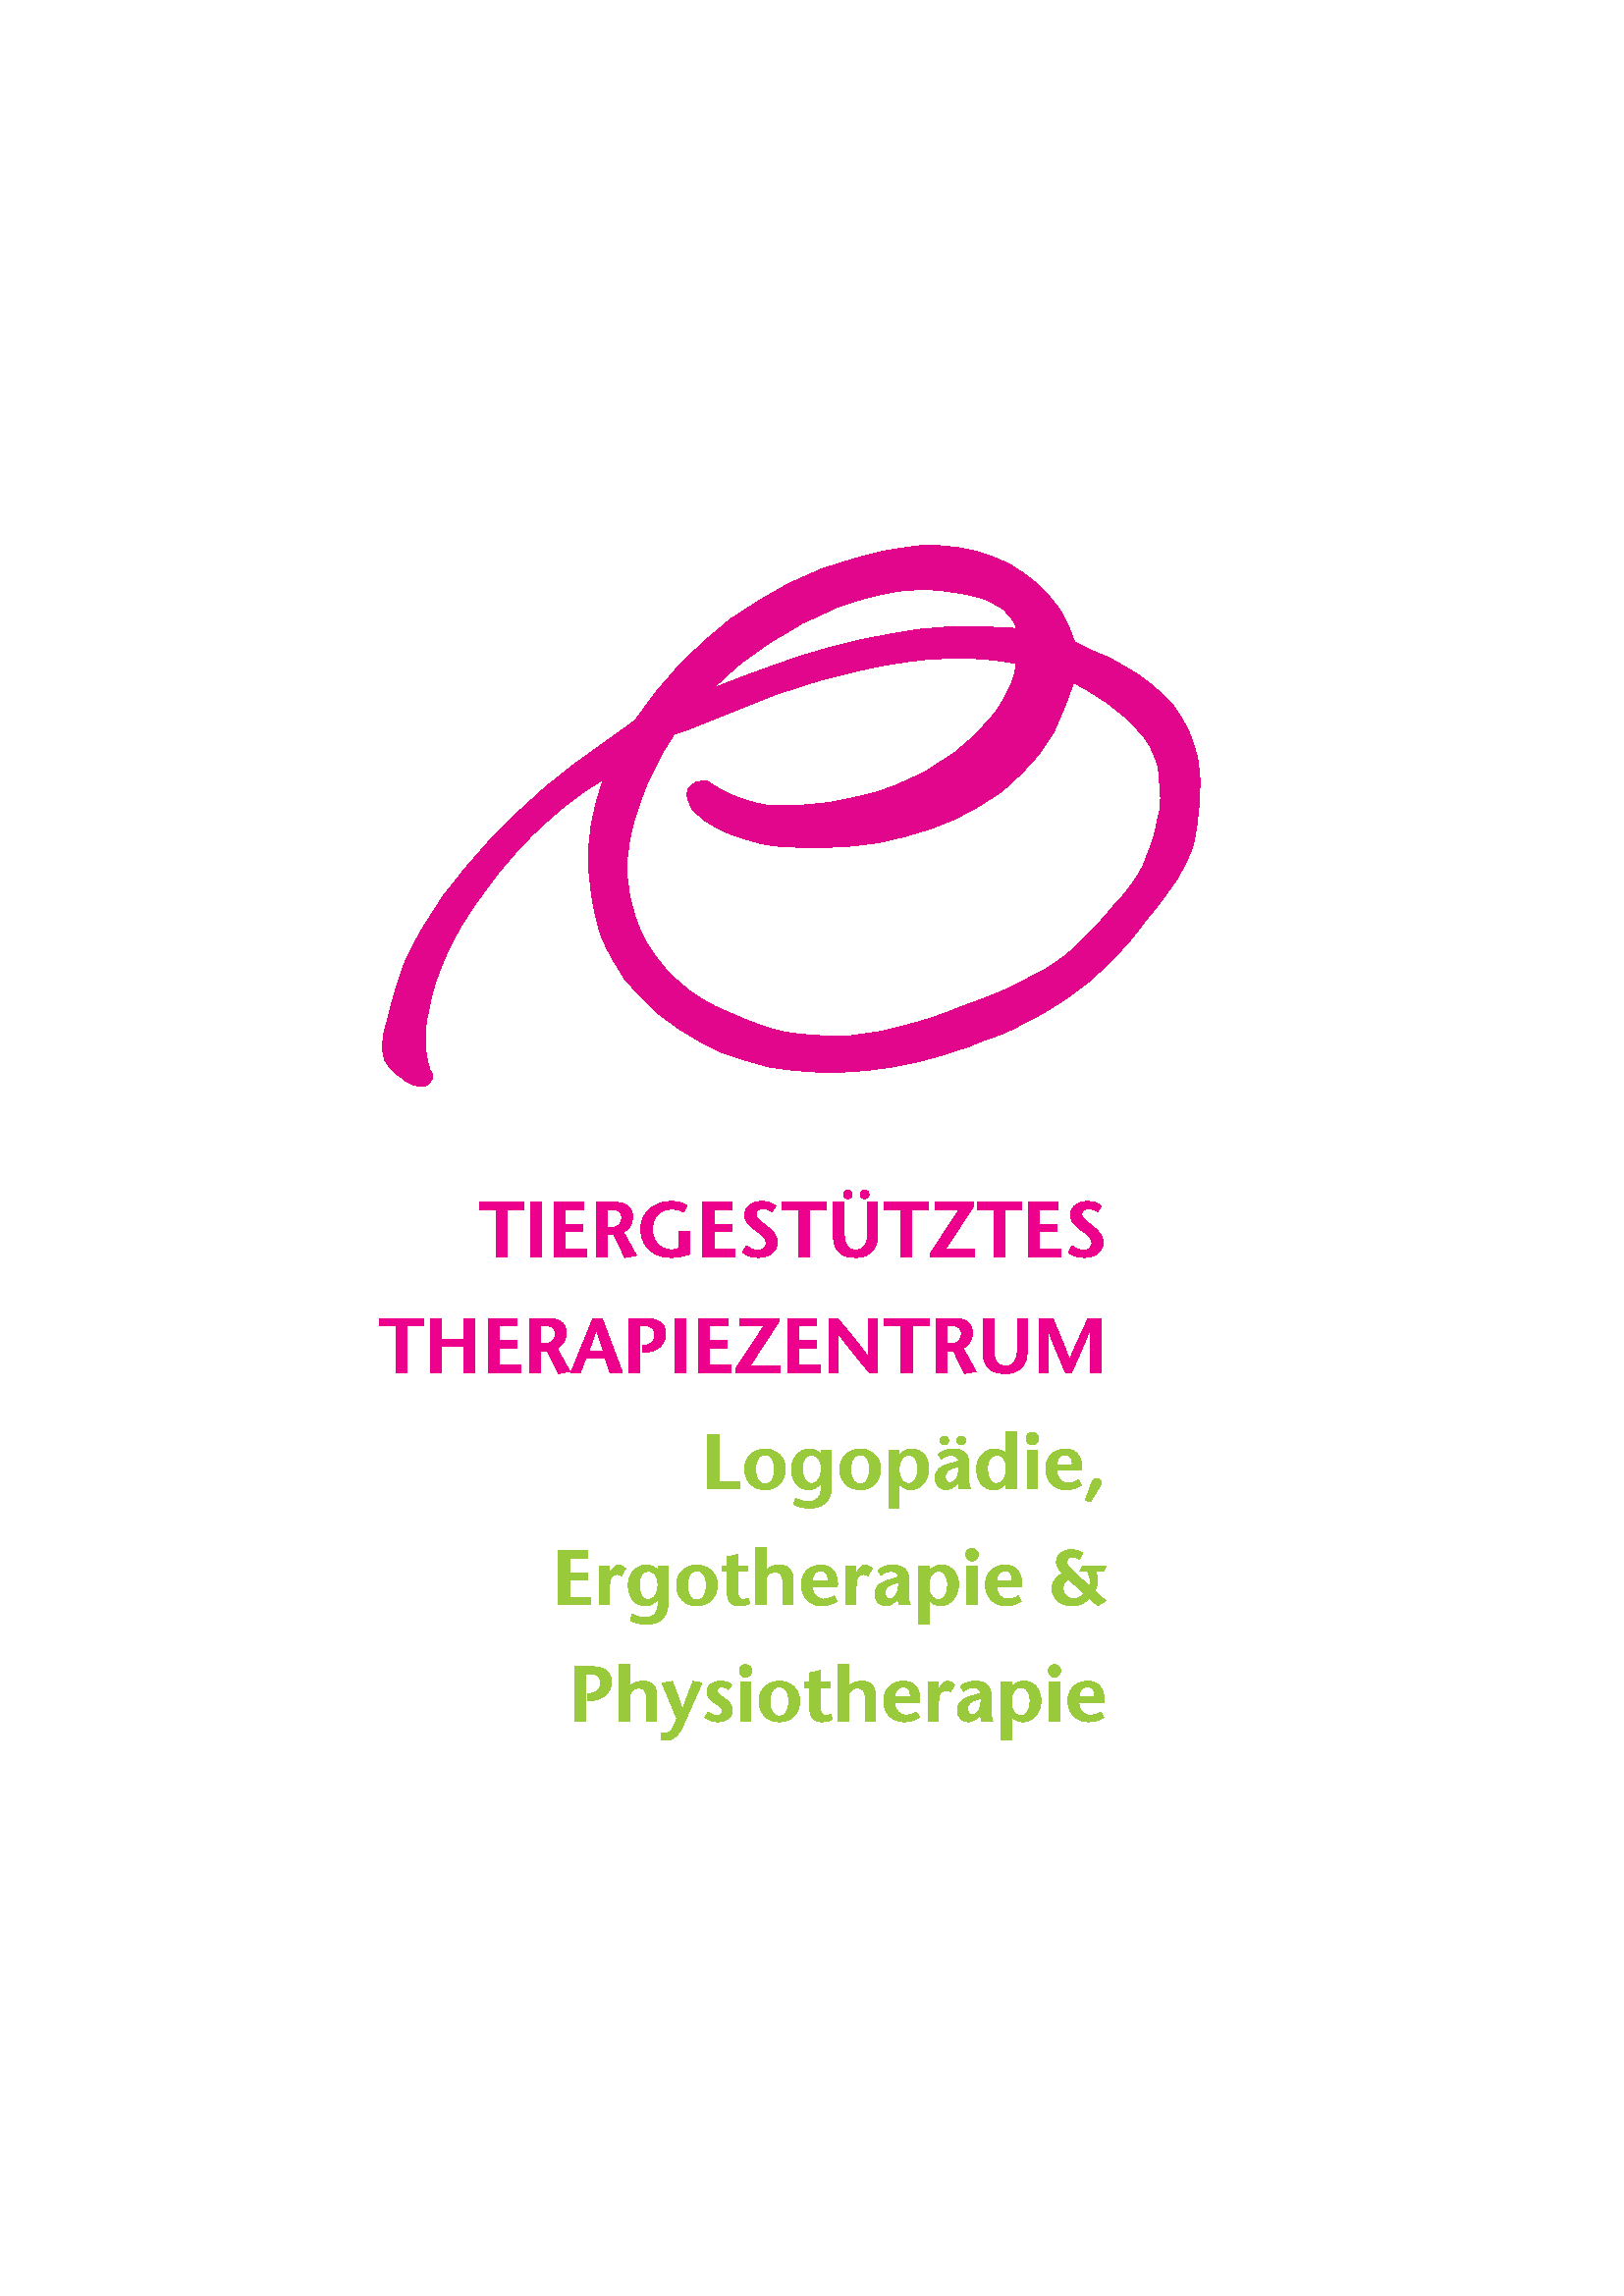 Therapiezentrum_tiergestuetzte_Therapie